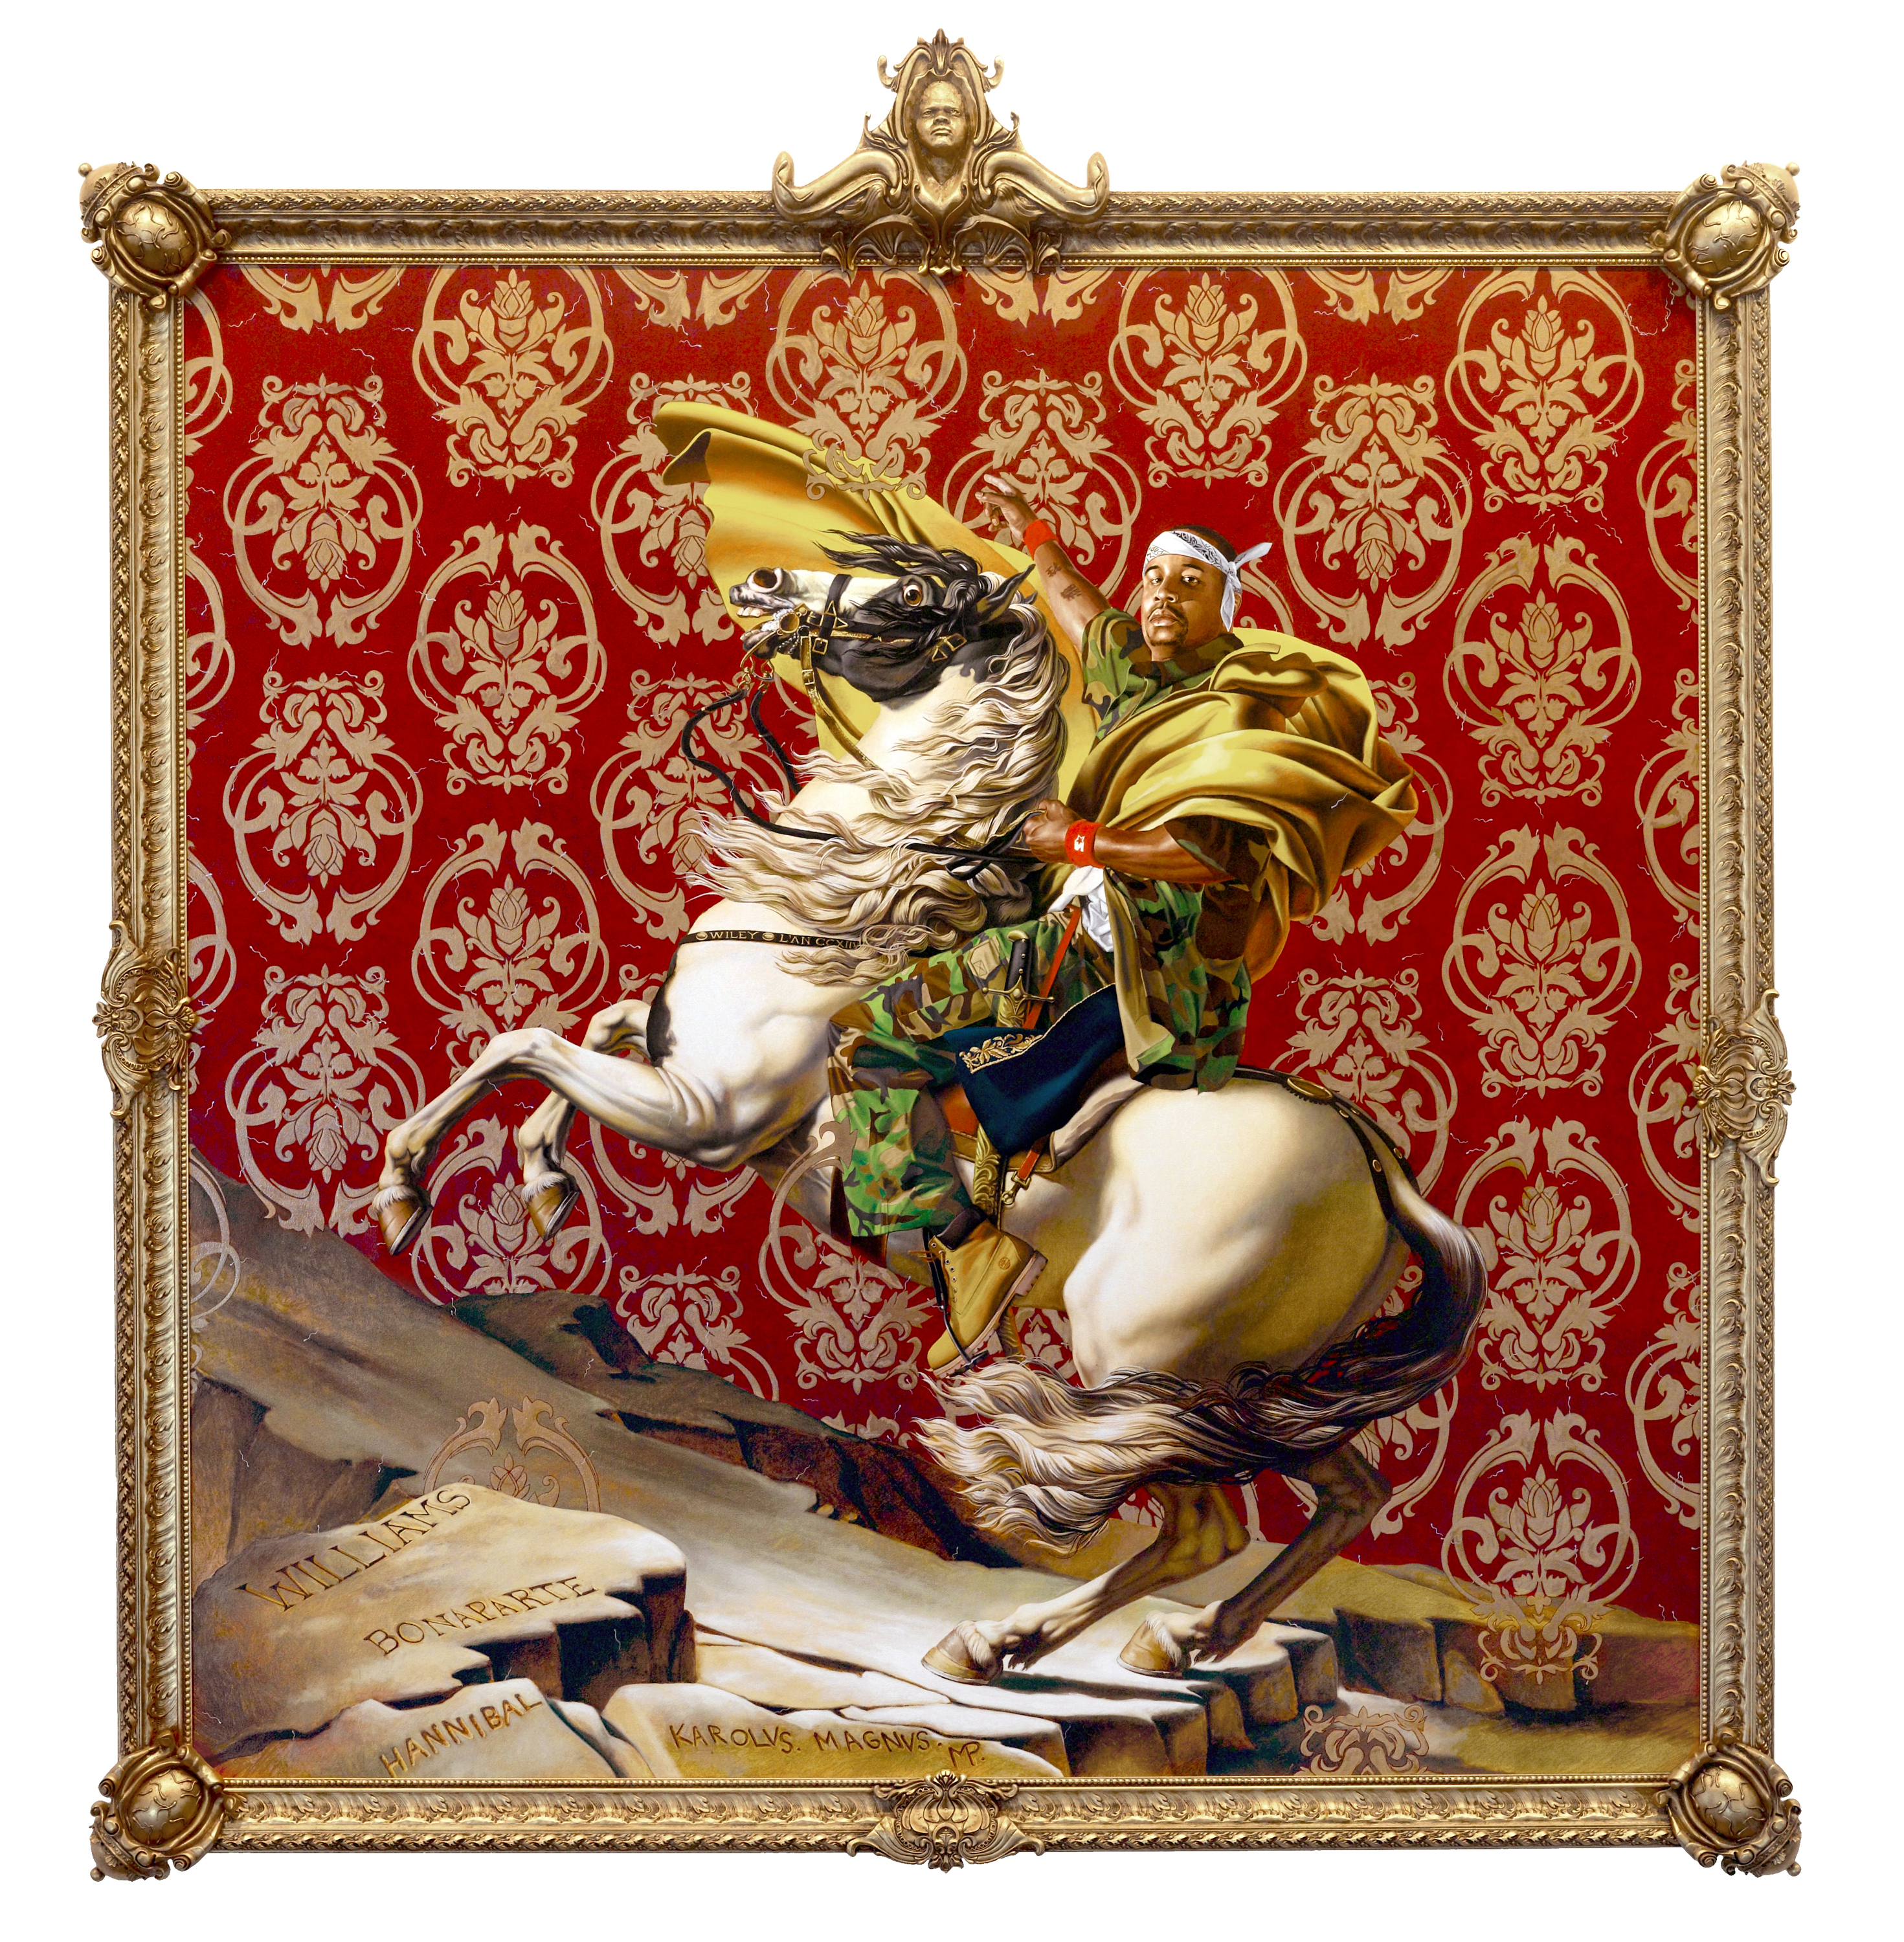 The Royal Treatment: Kehinde Wiley's street-chic update of the Old Masters